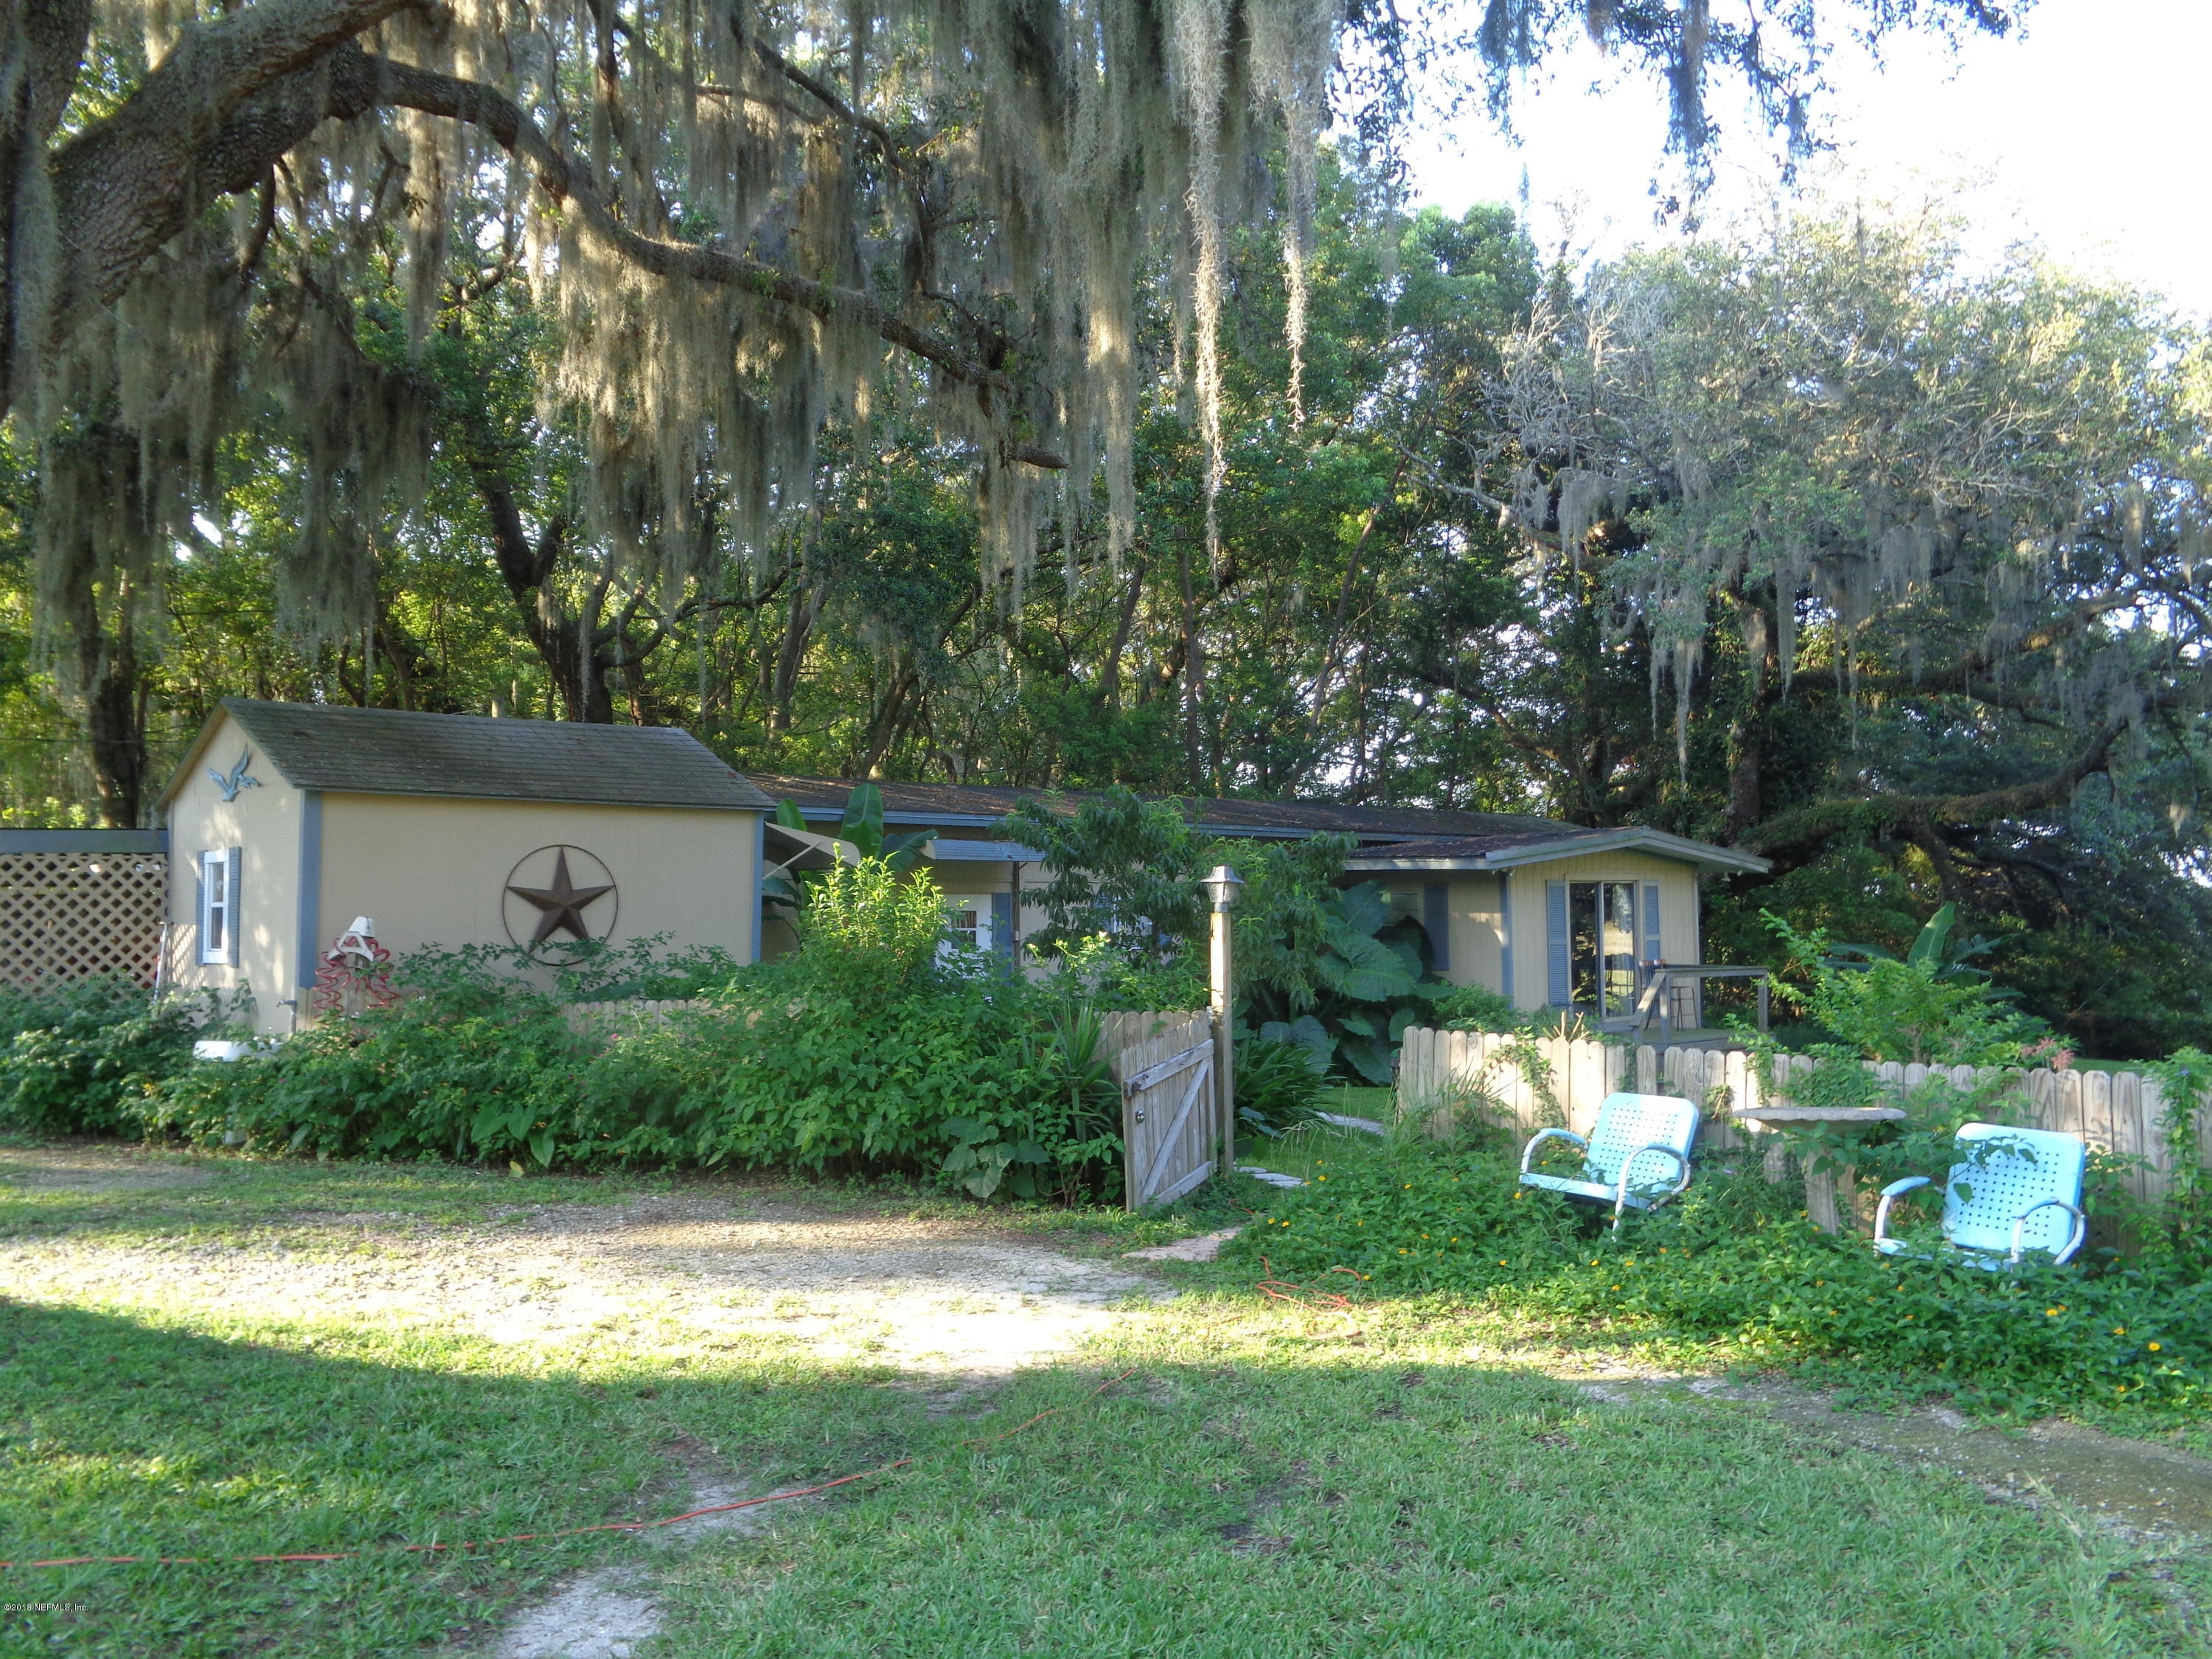 7792 FL-100, KEYSTONE HEIGHTS, FLORIDA 32656, 3 Bedrooms Bedrooms, ,2 BathroomsBathrooms,Residential - mobile home,For sale,FL-100,953833